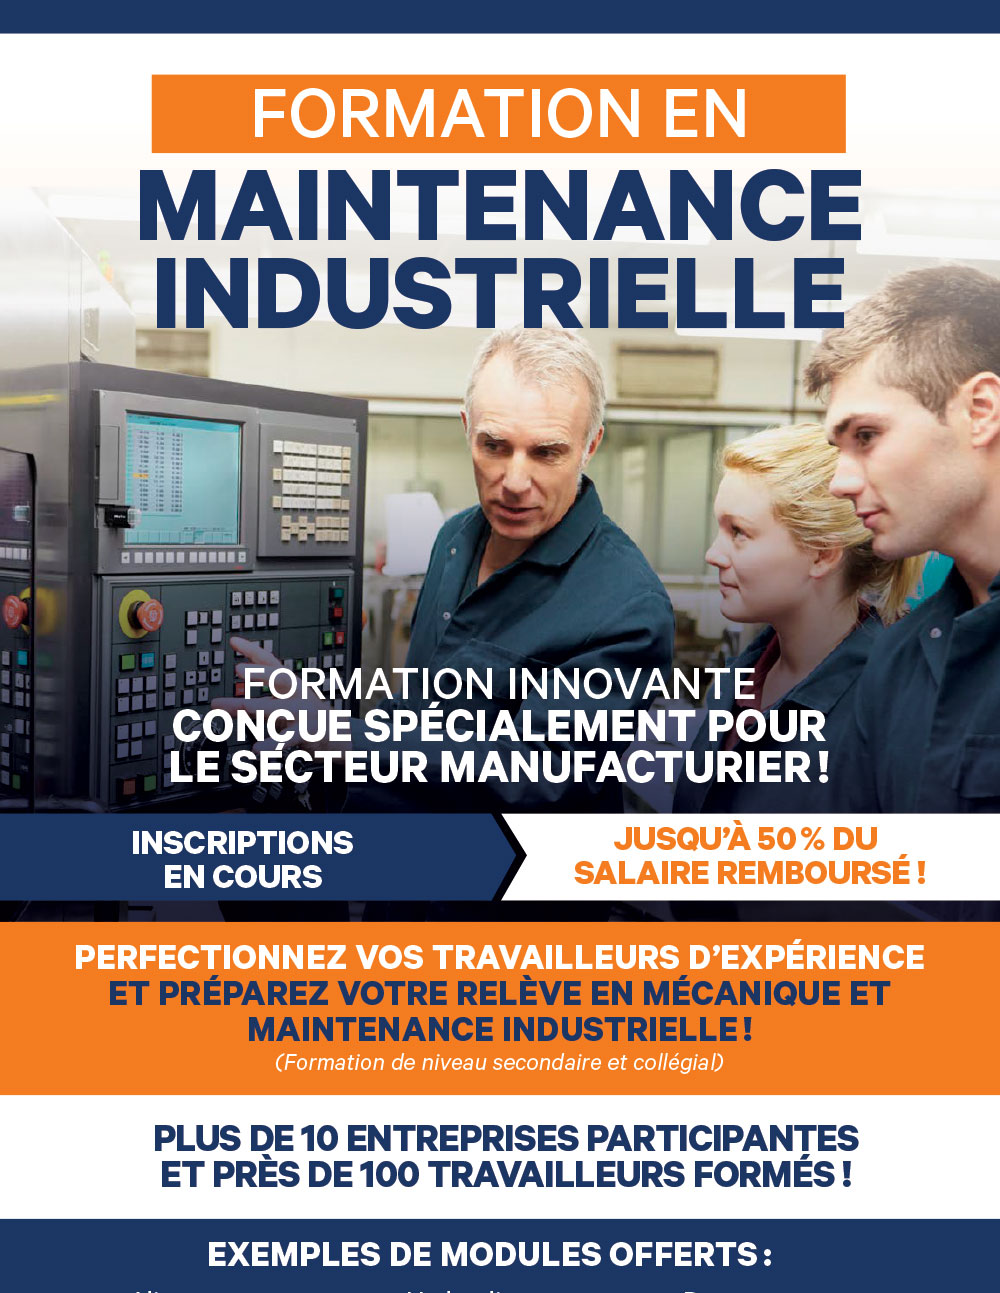 Maitenance industrielle